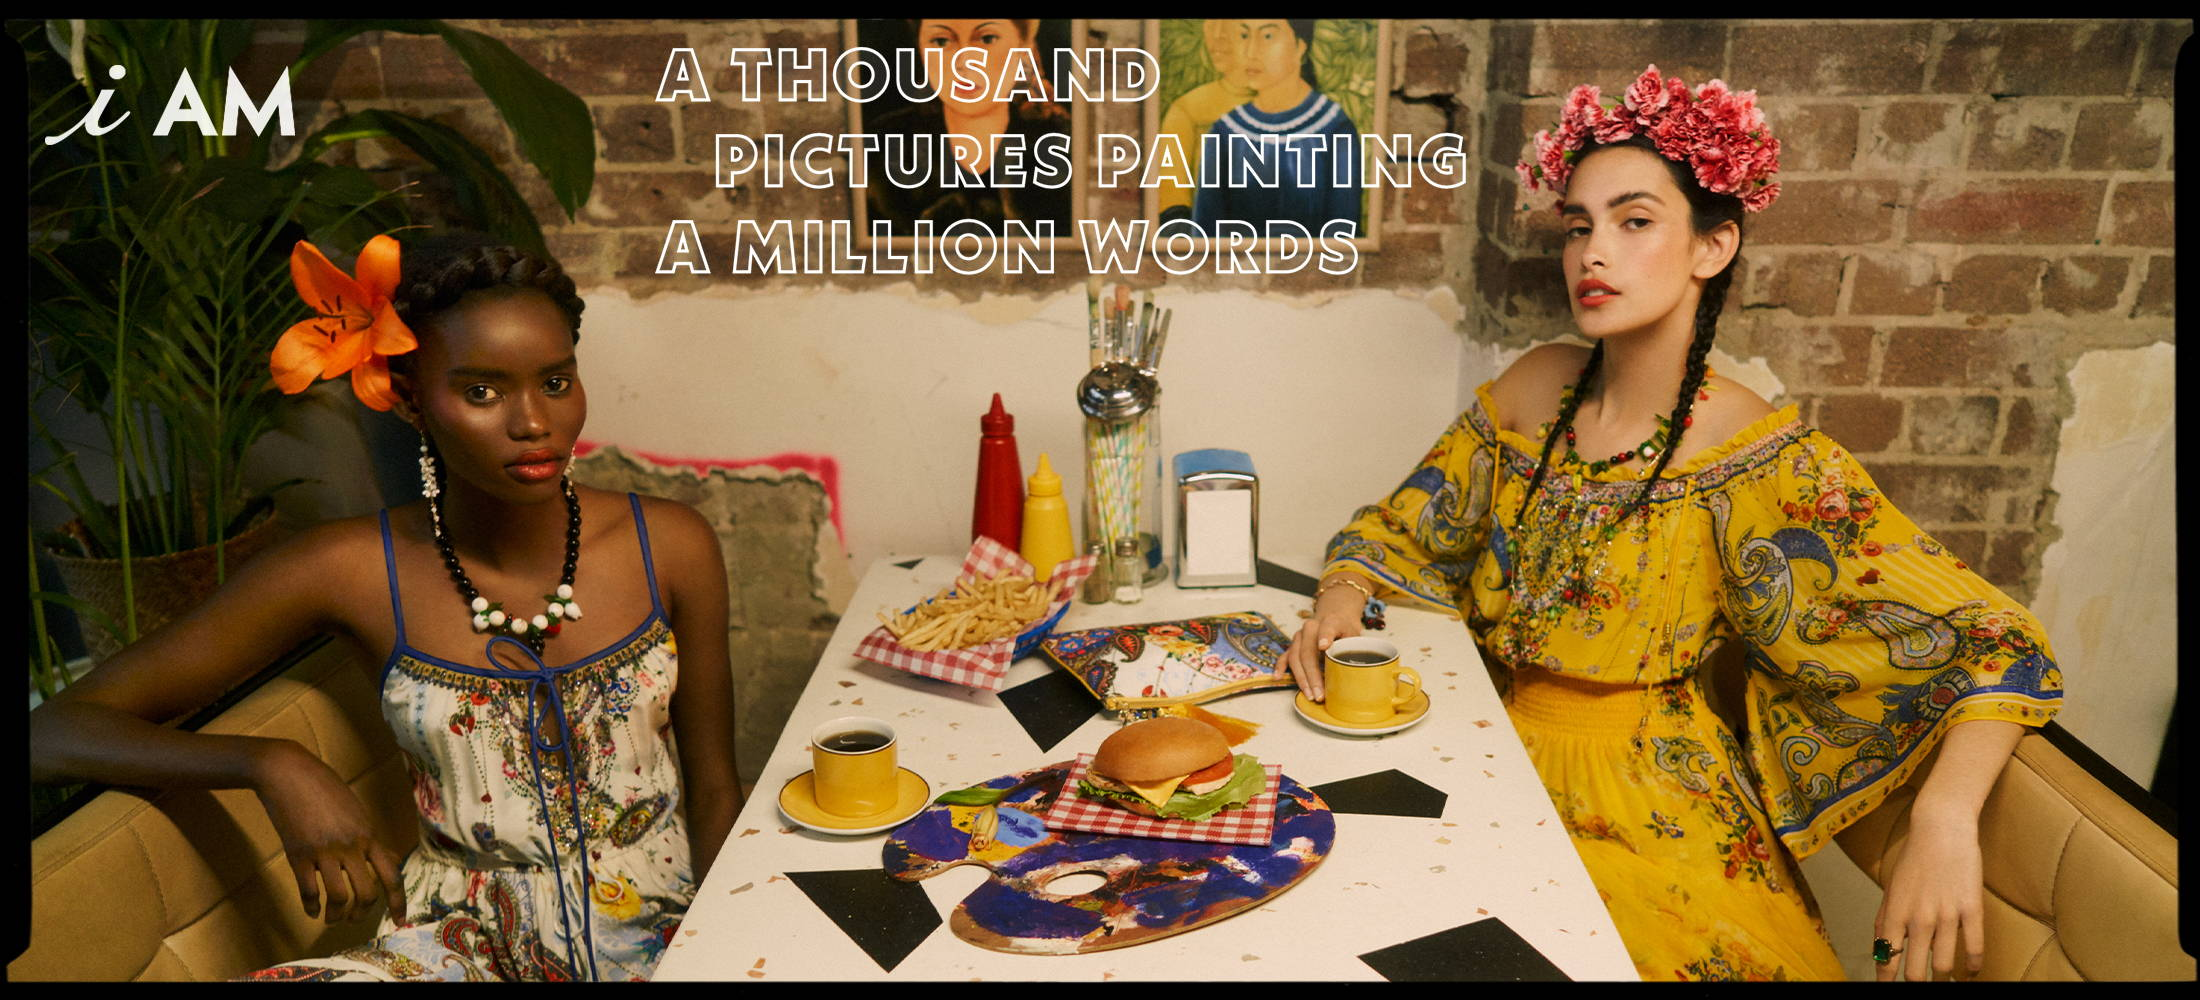 I am | A Thousand Pictures Painting a Million Words